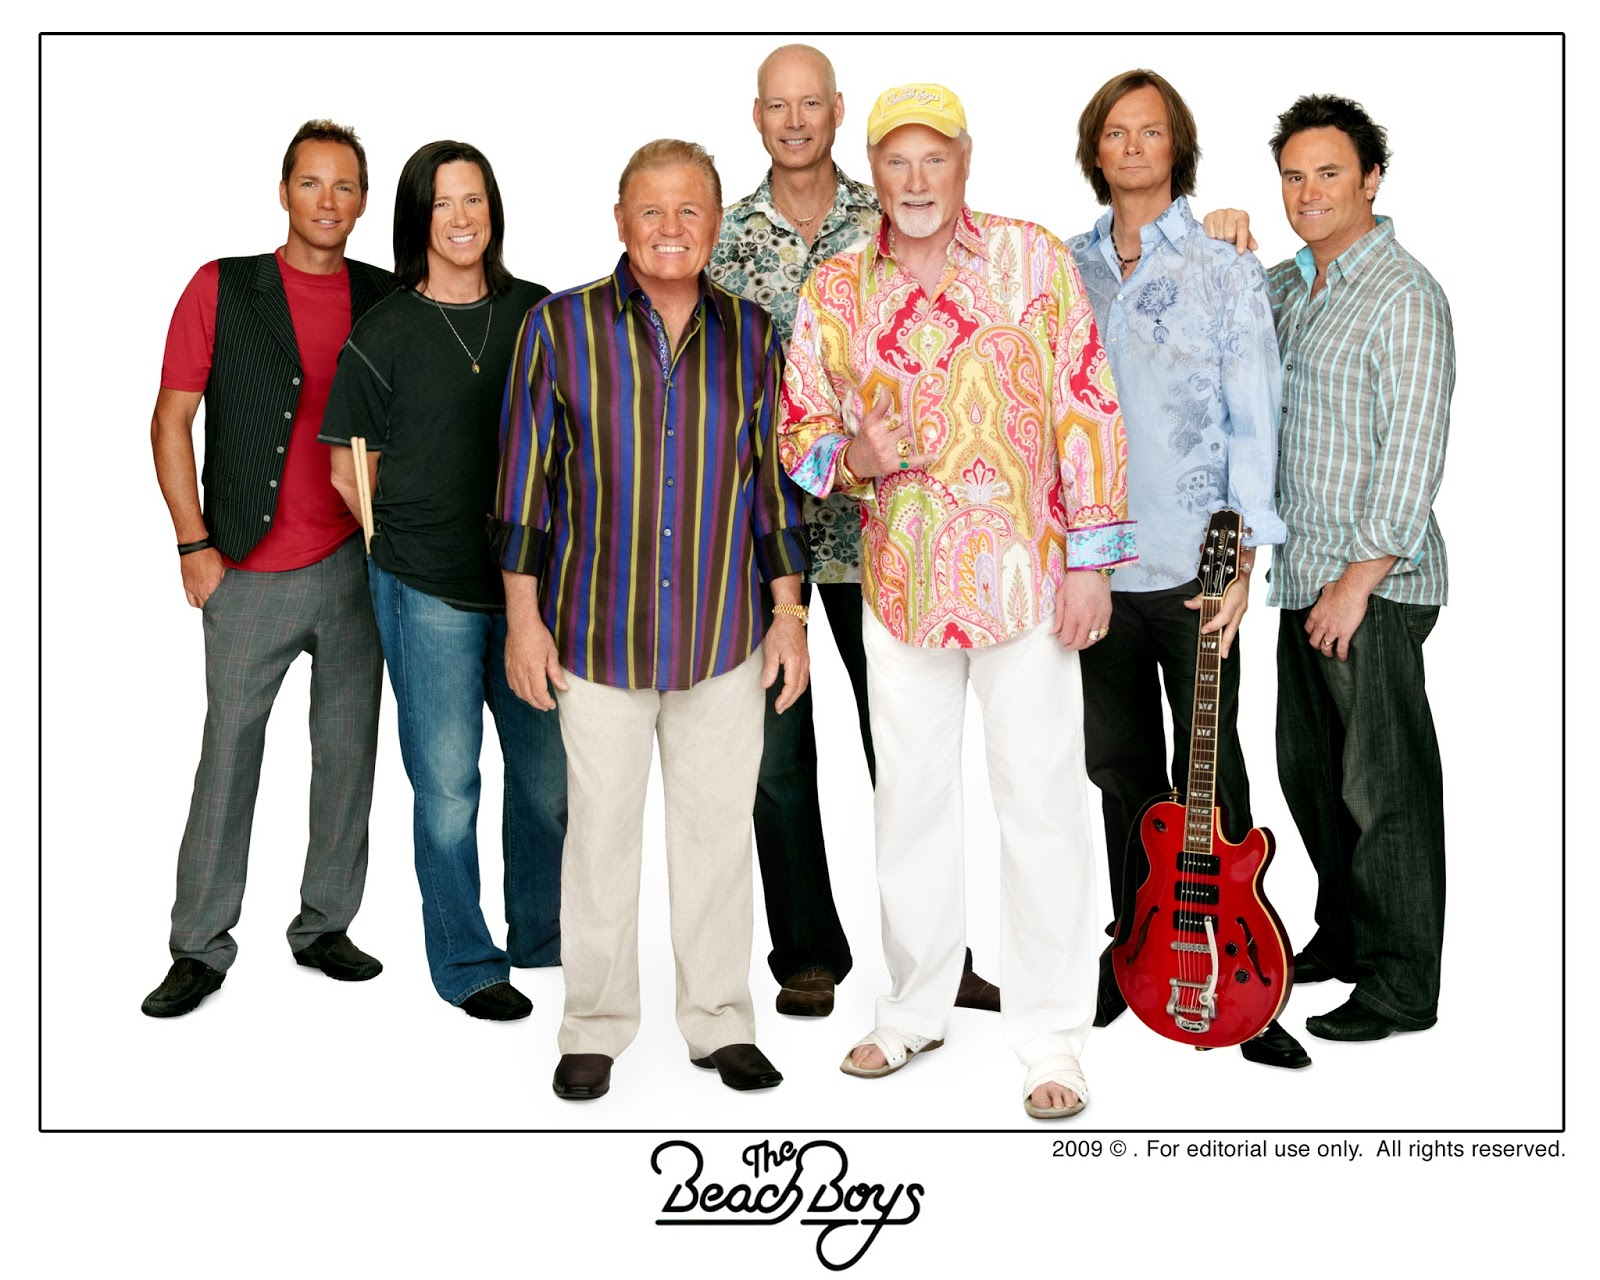 The Beach Boys pics